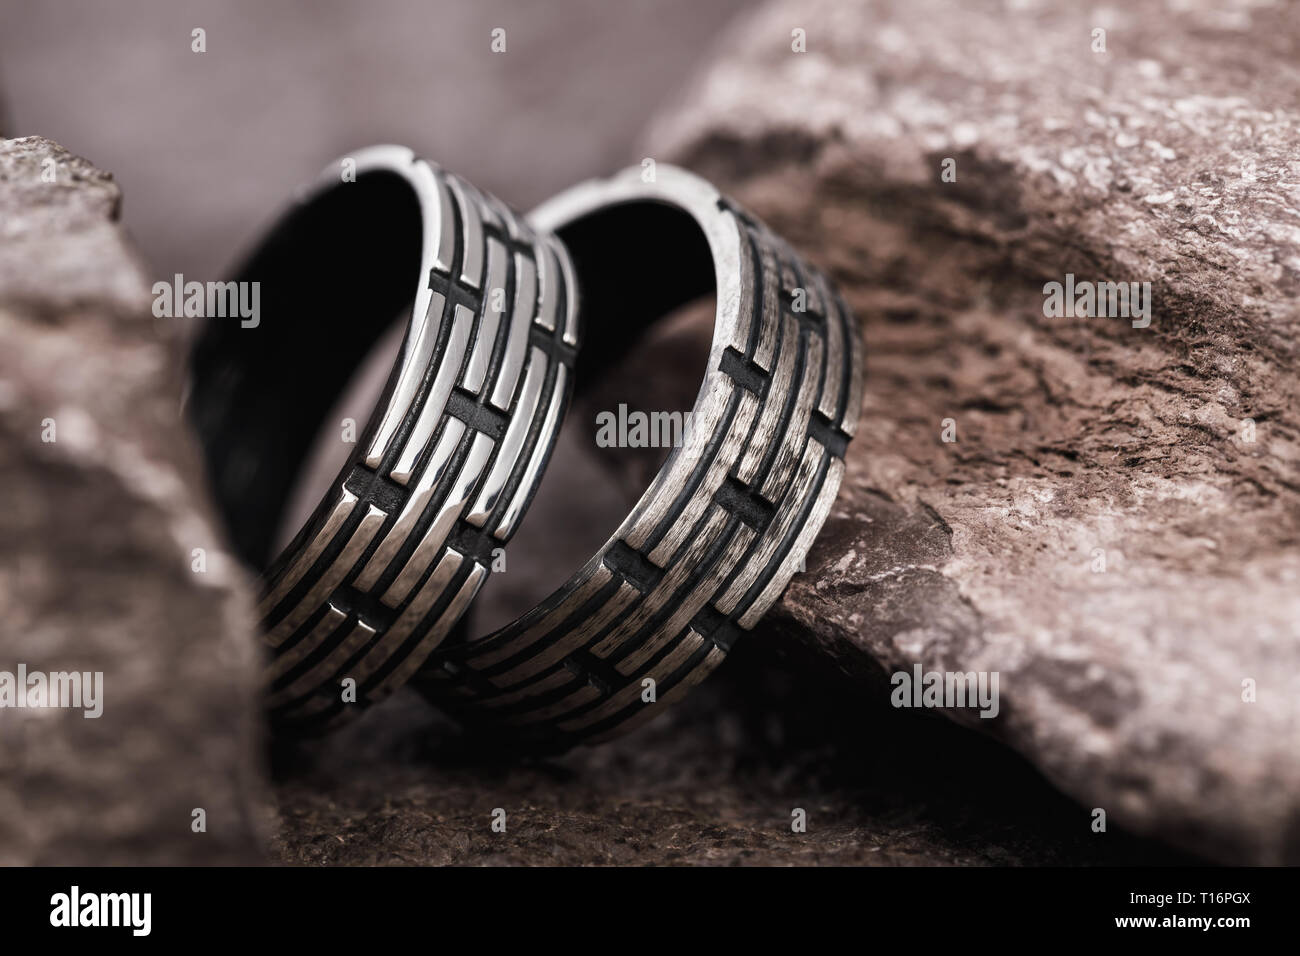 Silver mens rings on the stones, close-up - Stock Image